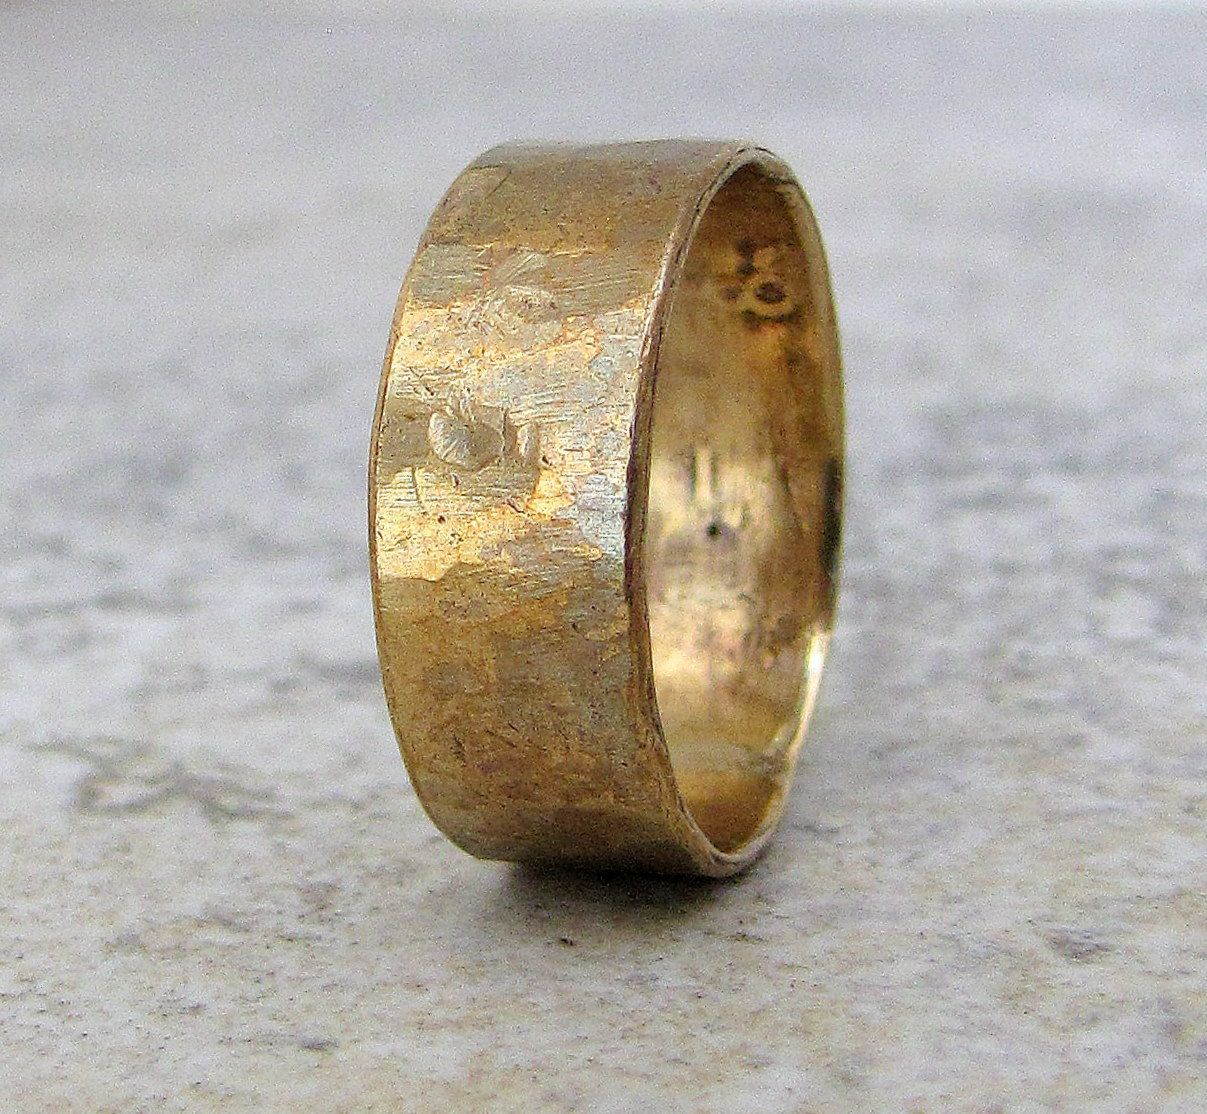 Hammered Brass Band Distressed Wedding Ring Rustic Mens Relic Artifact: Rustic Wedding Rings Men S At Websimilar.org